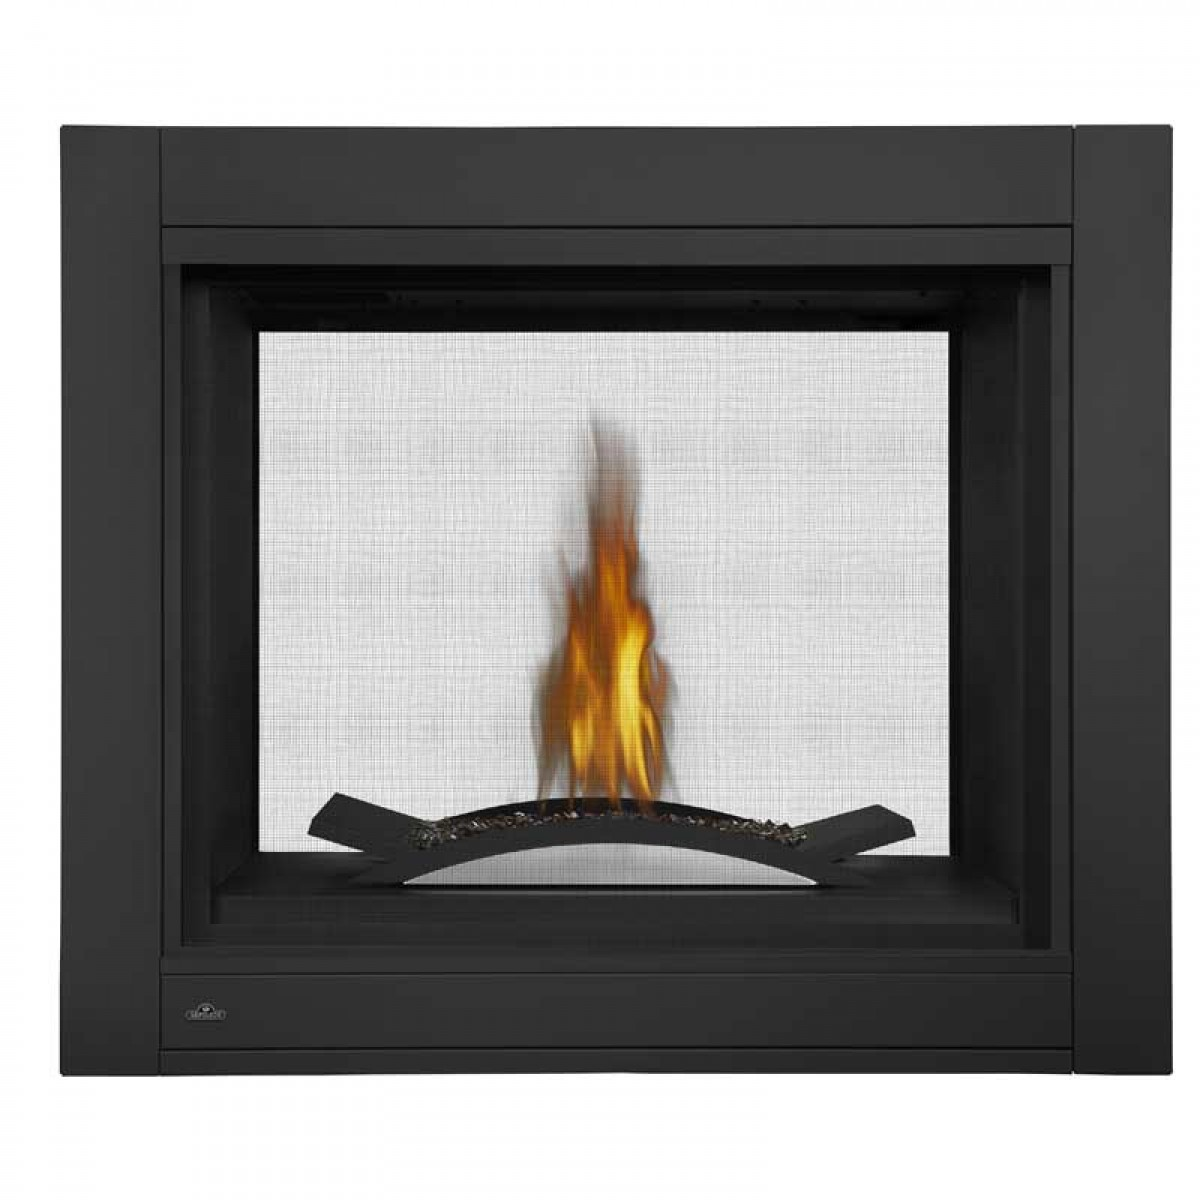 Napoleon Bhd4stfcn Clean Face Fireplace See Thru With Fire Cradle Natural Gas At Ibuyfireplaces